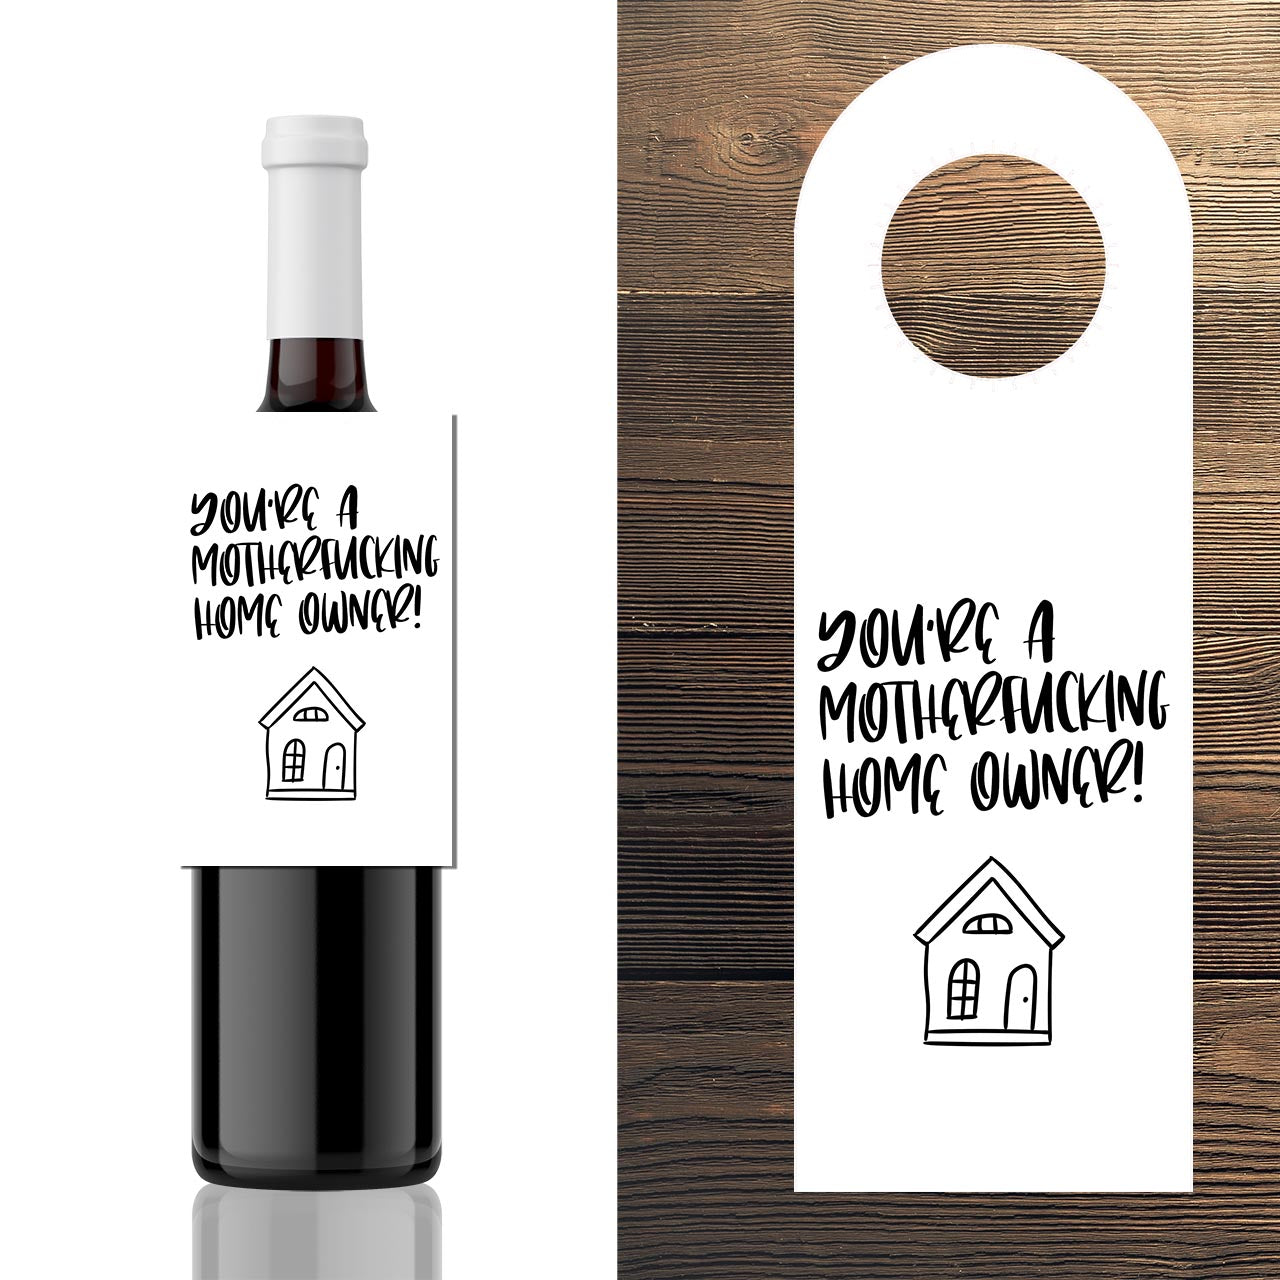 3x House Warming Wine bottle hang gift Label - You're a motherfucking home owner!